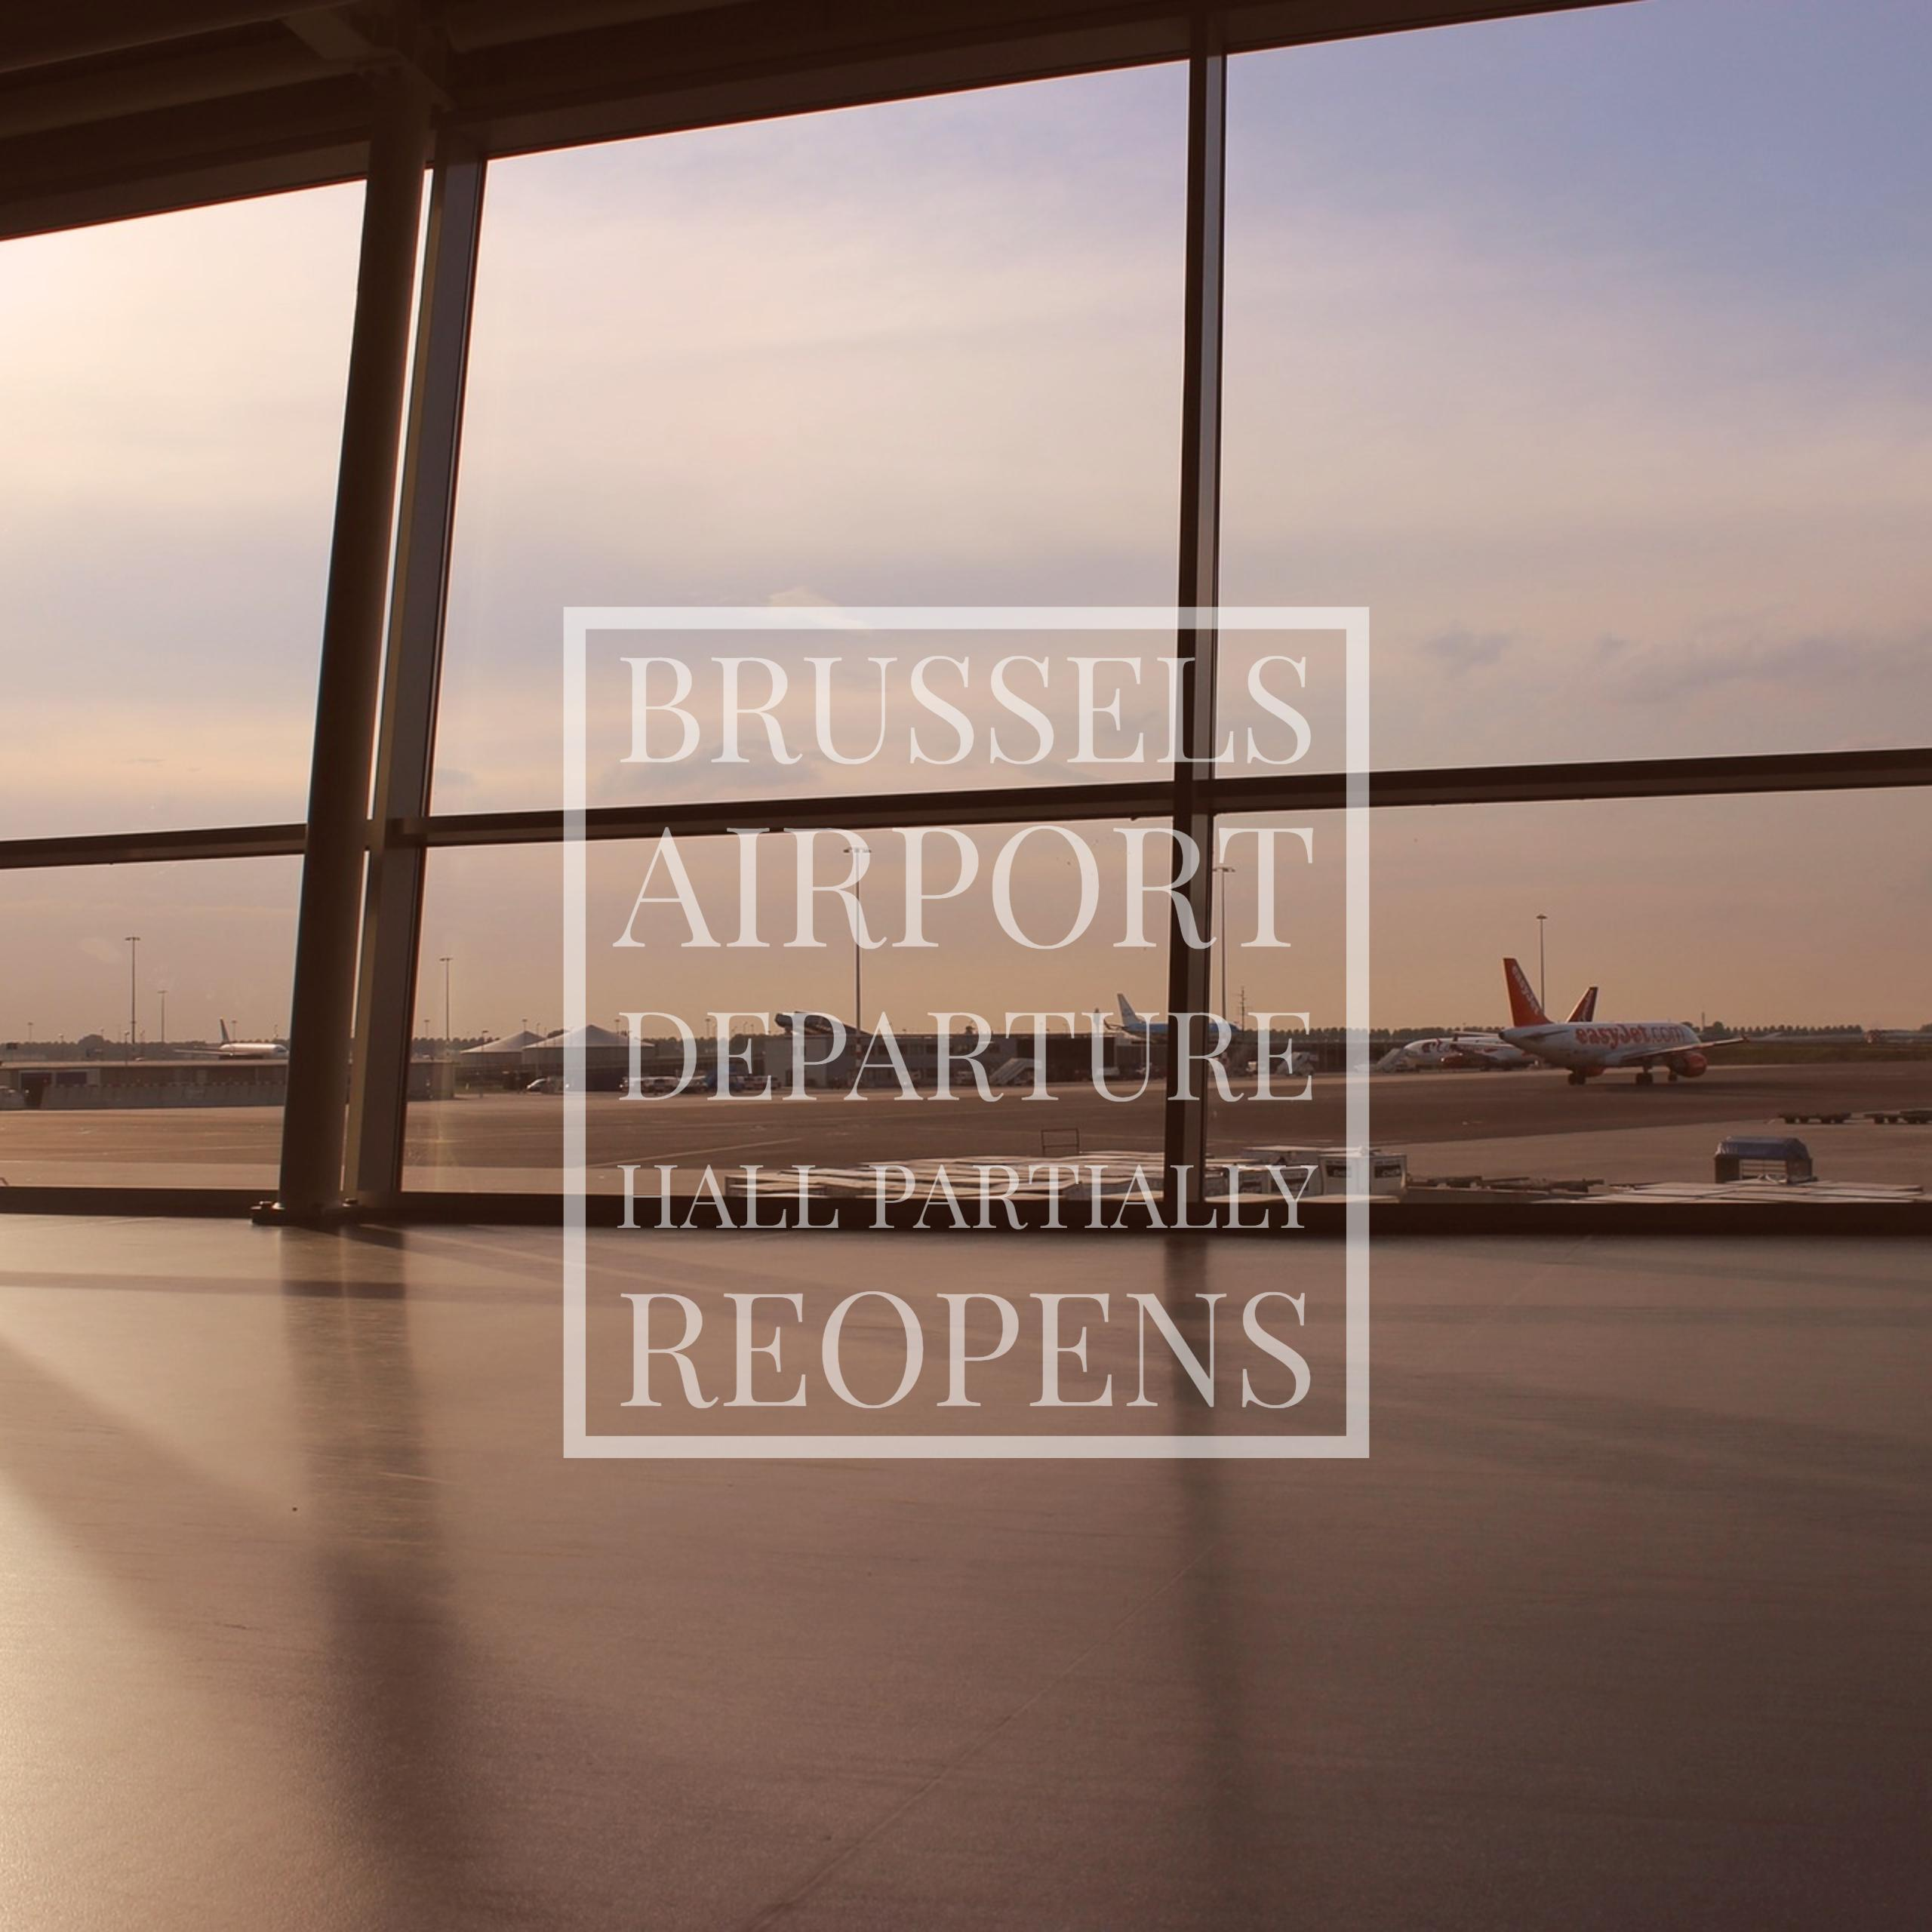 Brussels Airport Departure Hall Partially Reopens Final